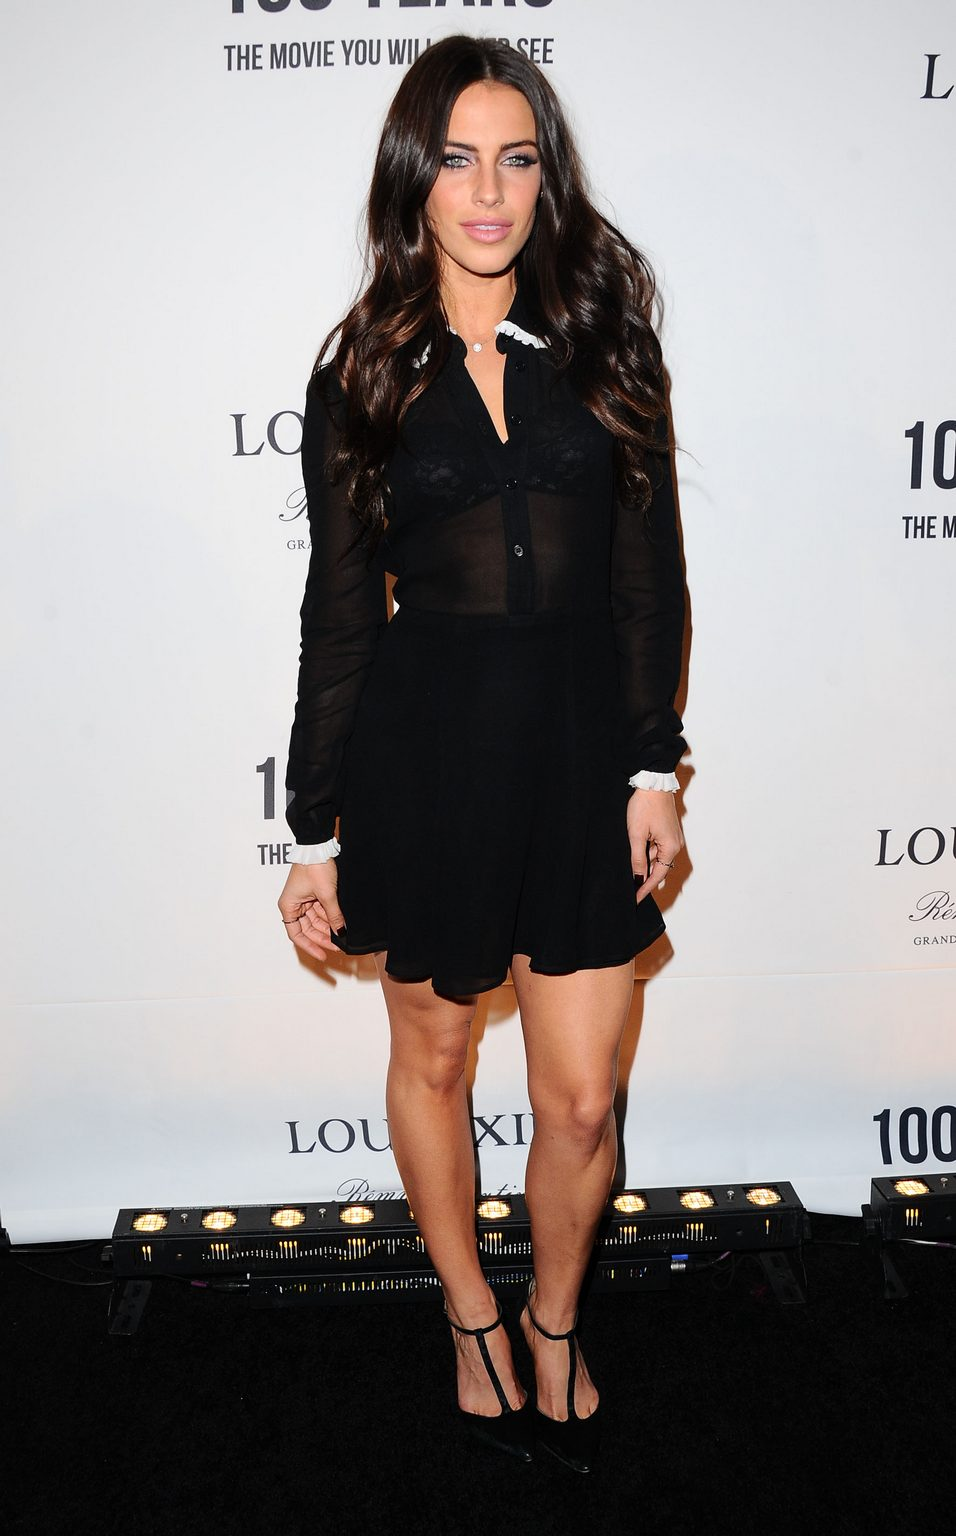 Jessica Lowndes arrives at LOUIS XIII Toasts To Years: The Movie You Will Never See-1